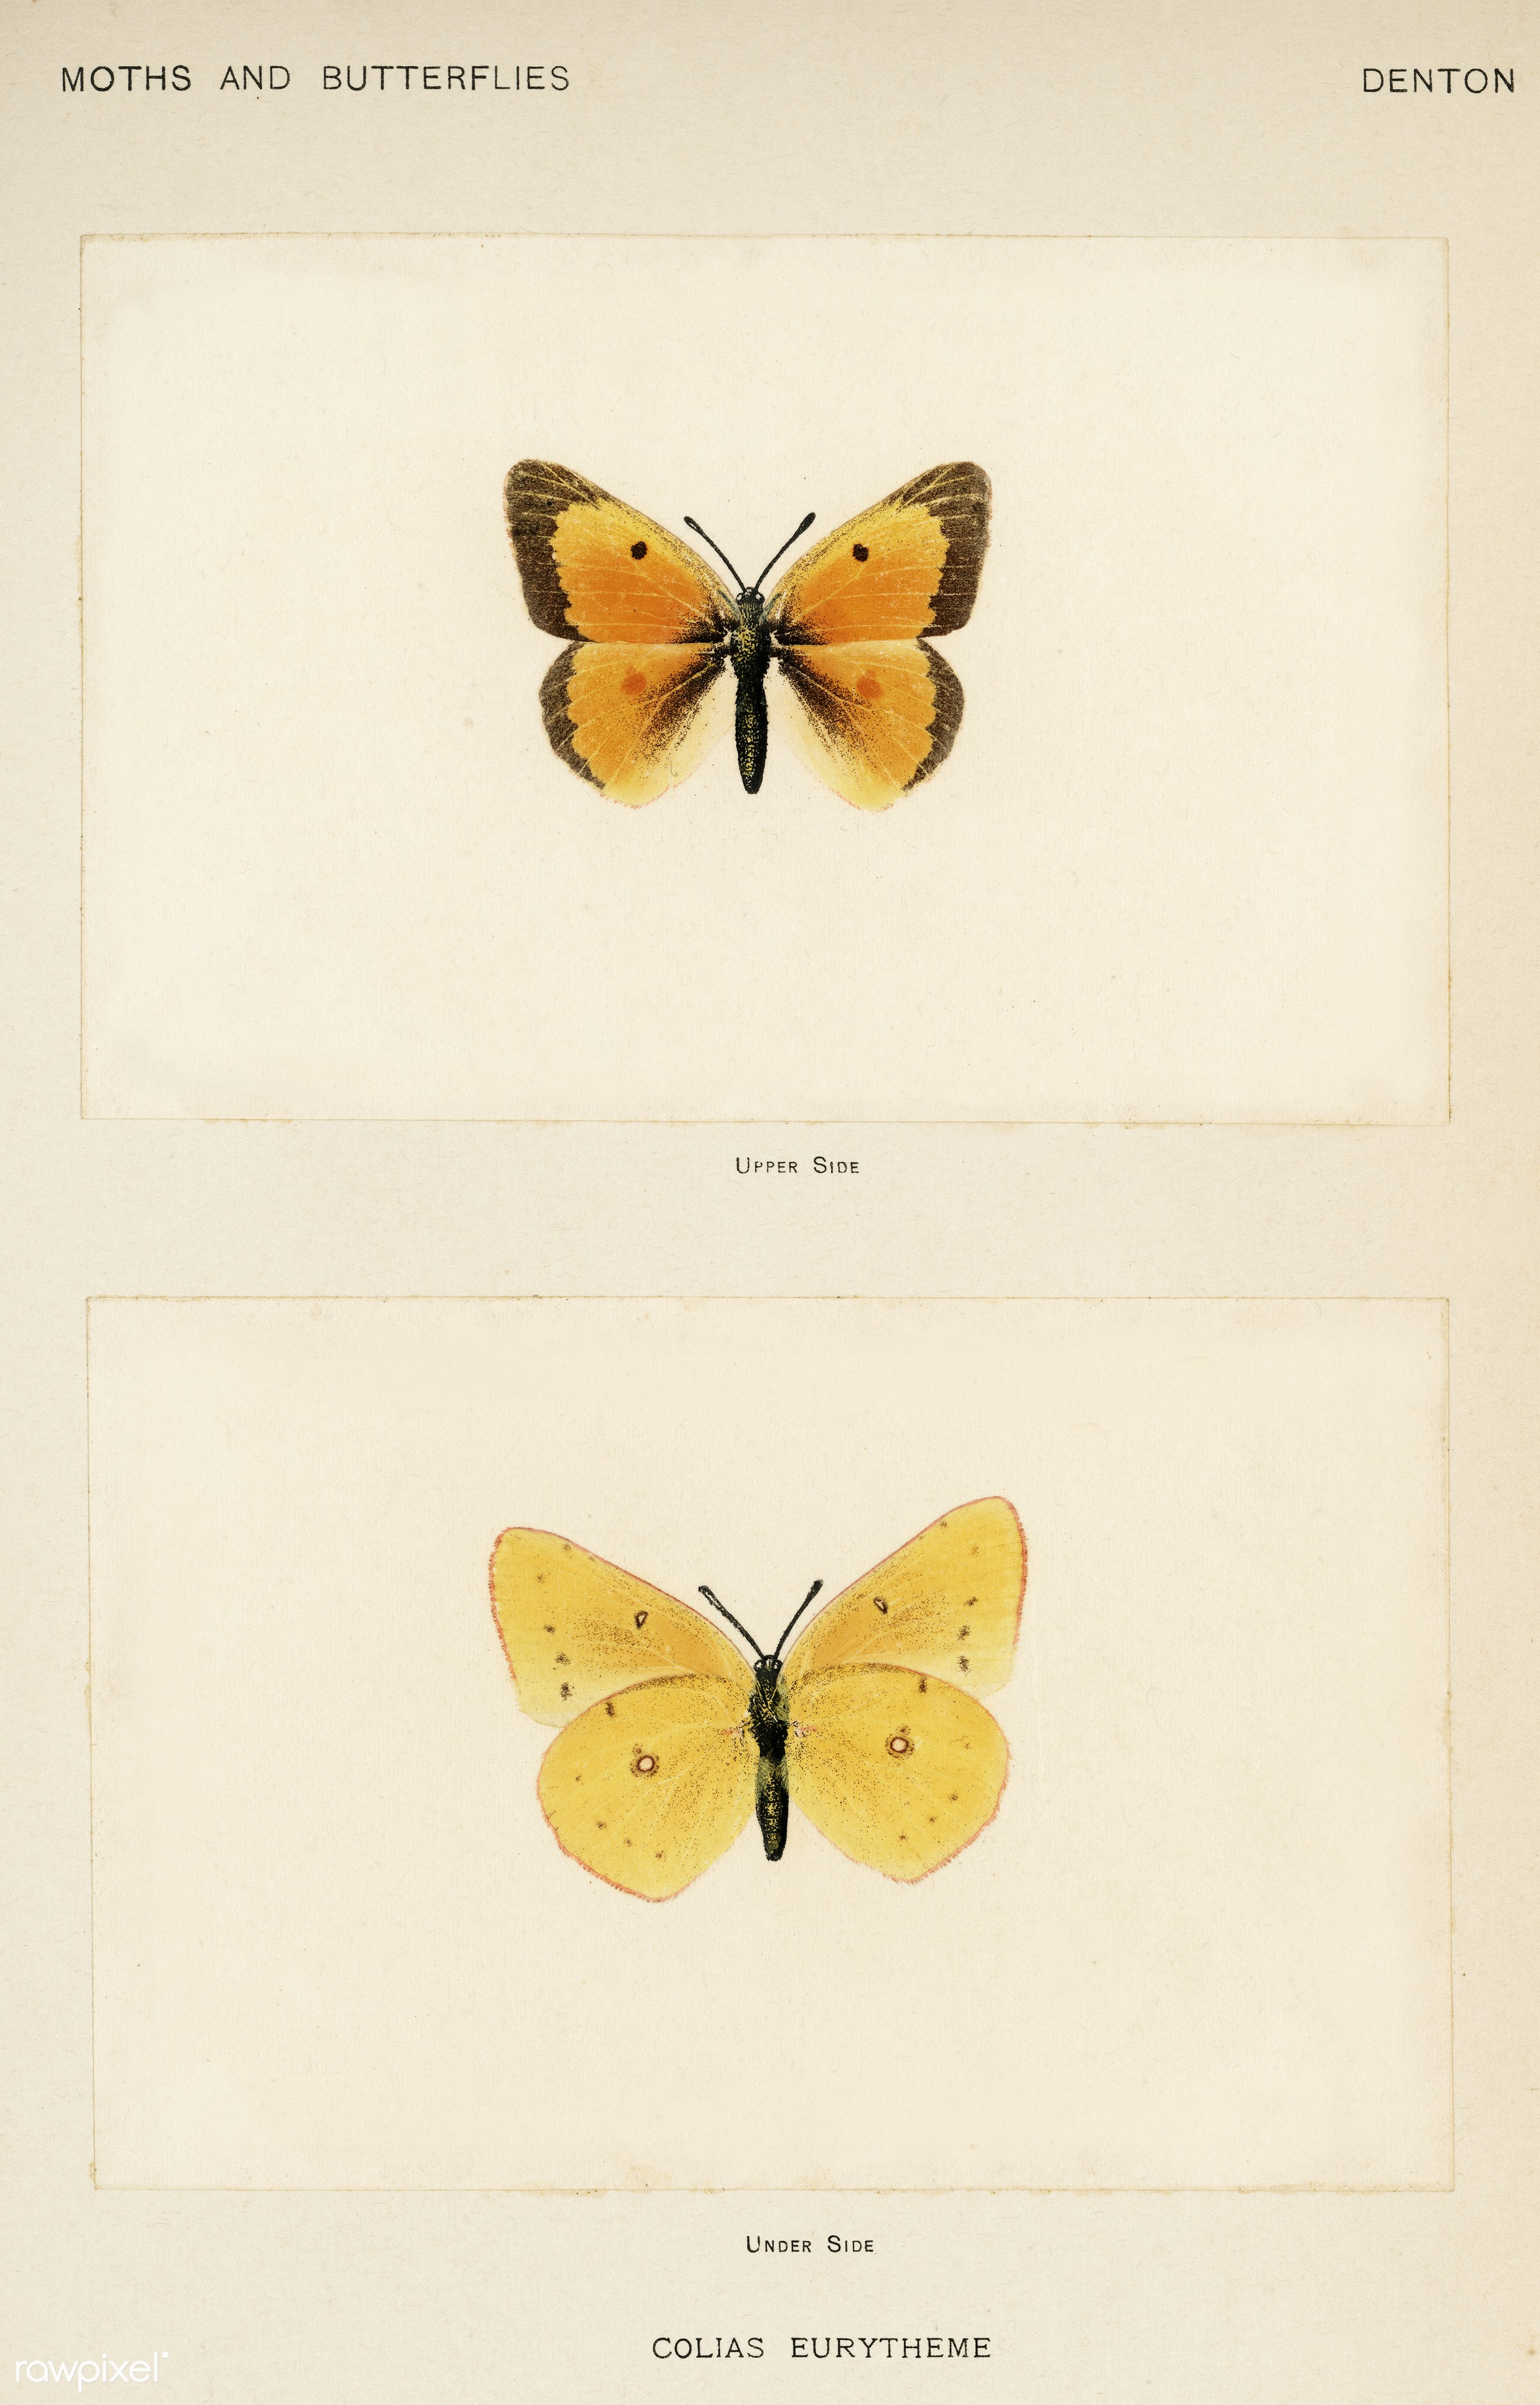 Orange Sulphur (Colias Eurytheme) from Moths and butterflies of the United States (1900) by Sherman F. Denton (1856-1937)....